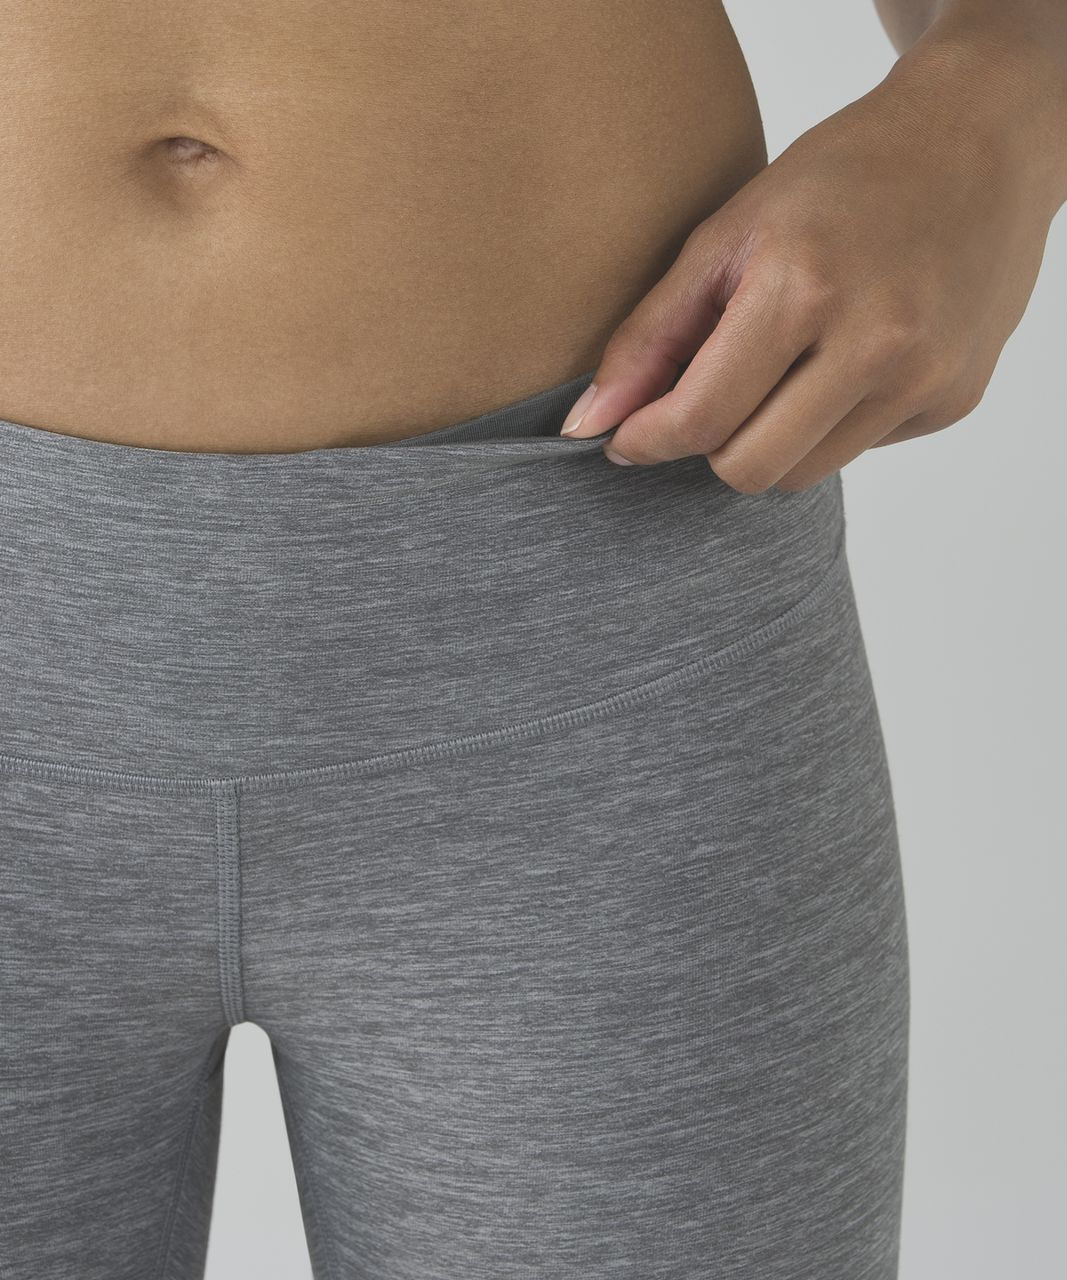 Lululemon Wunder Under Crop III - Heathered Slate